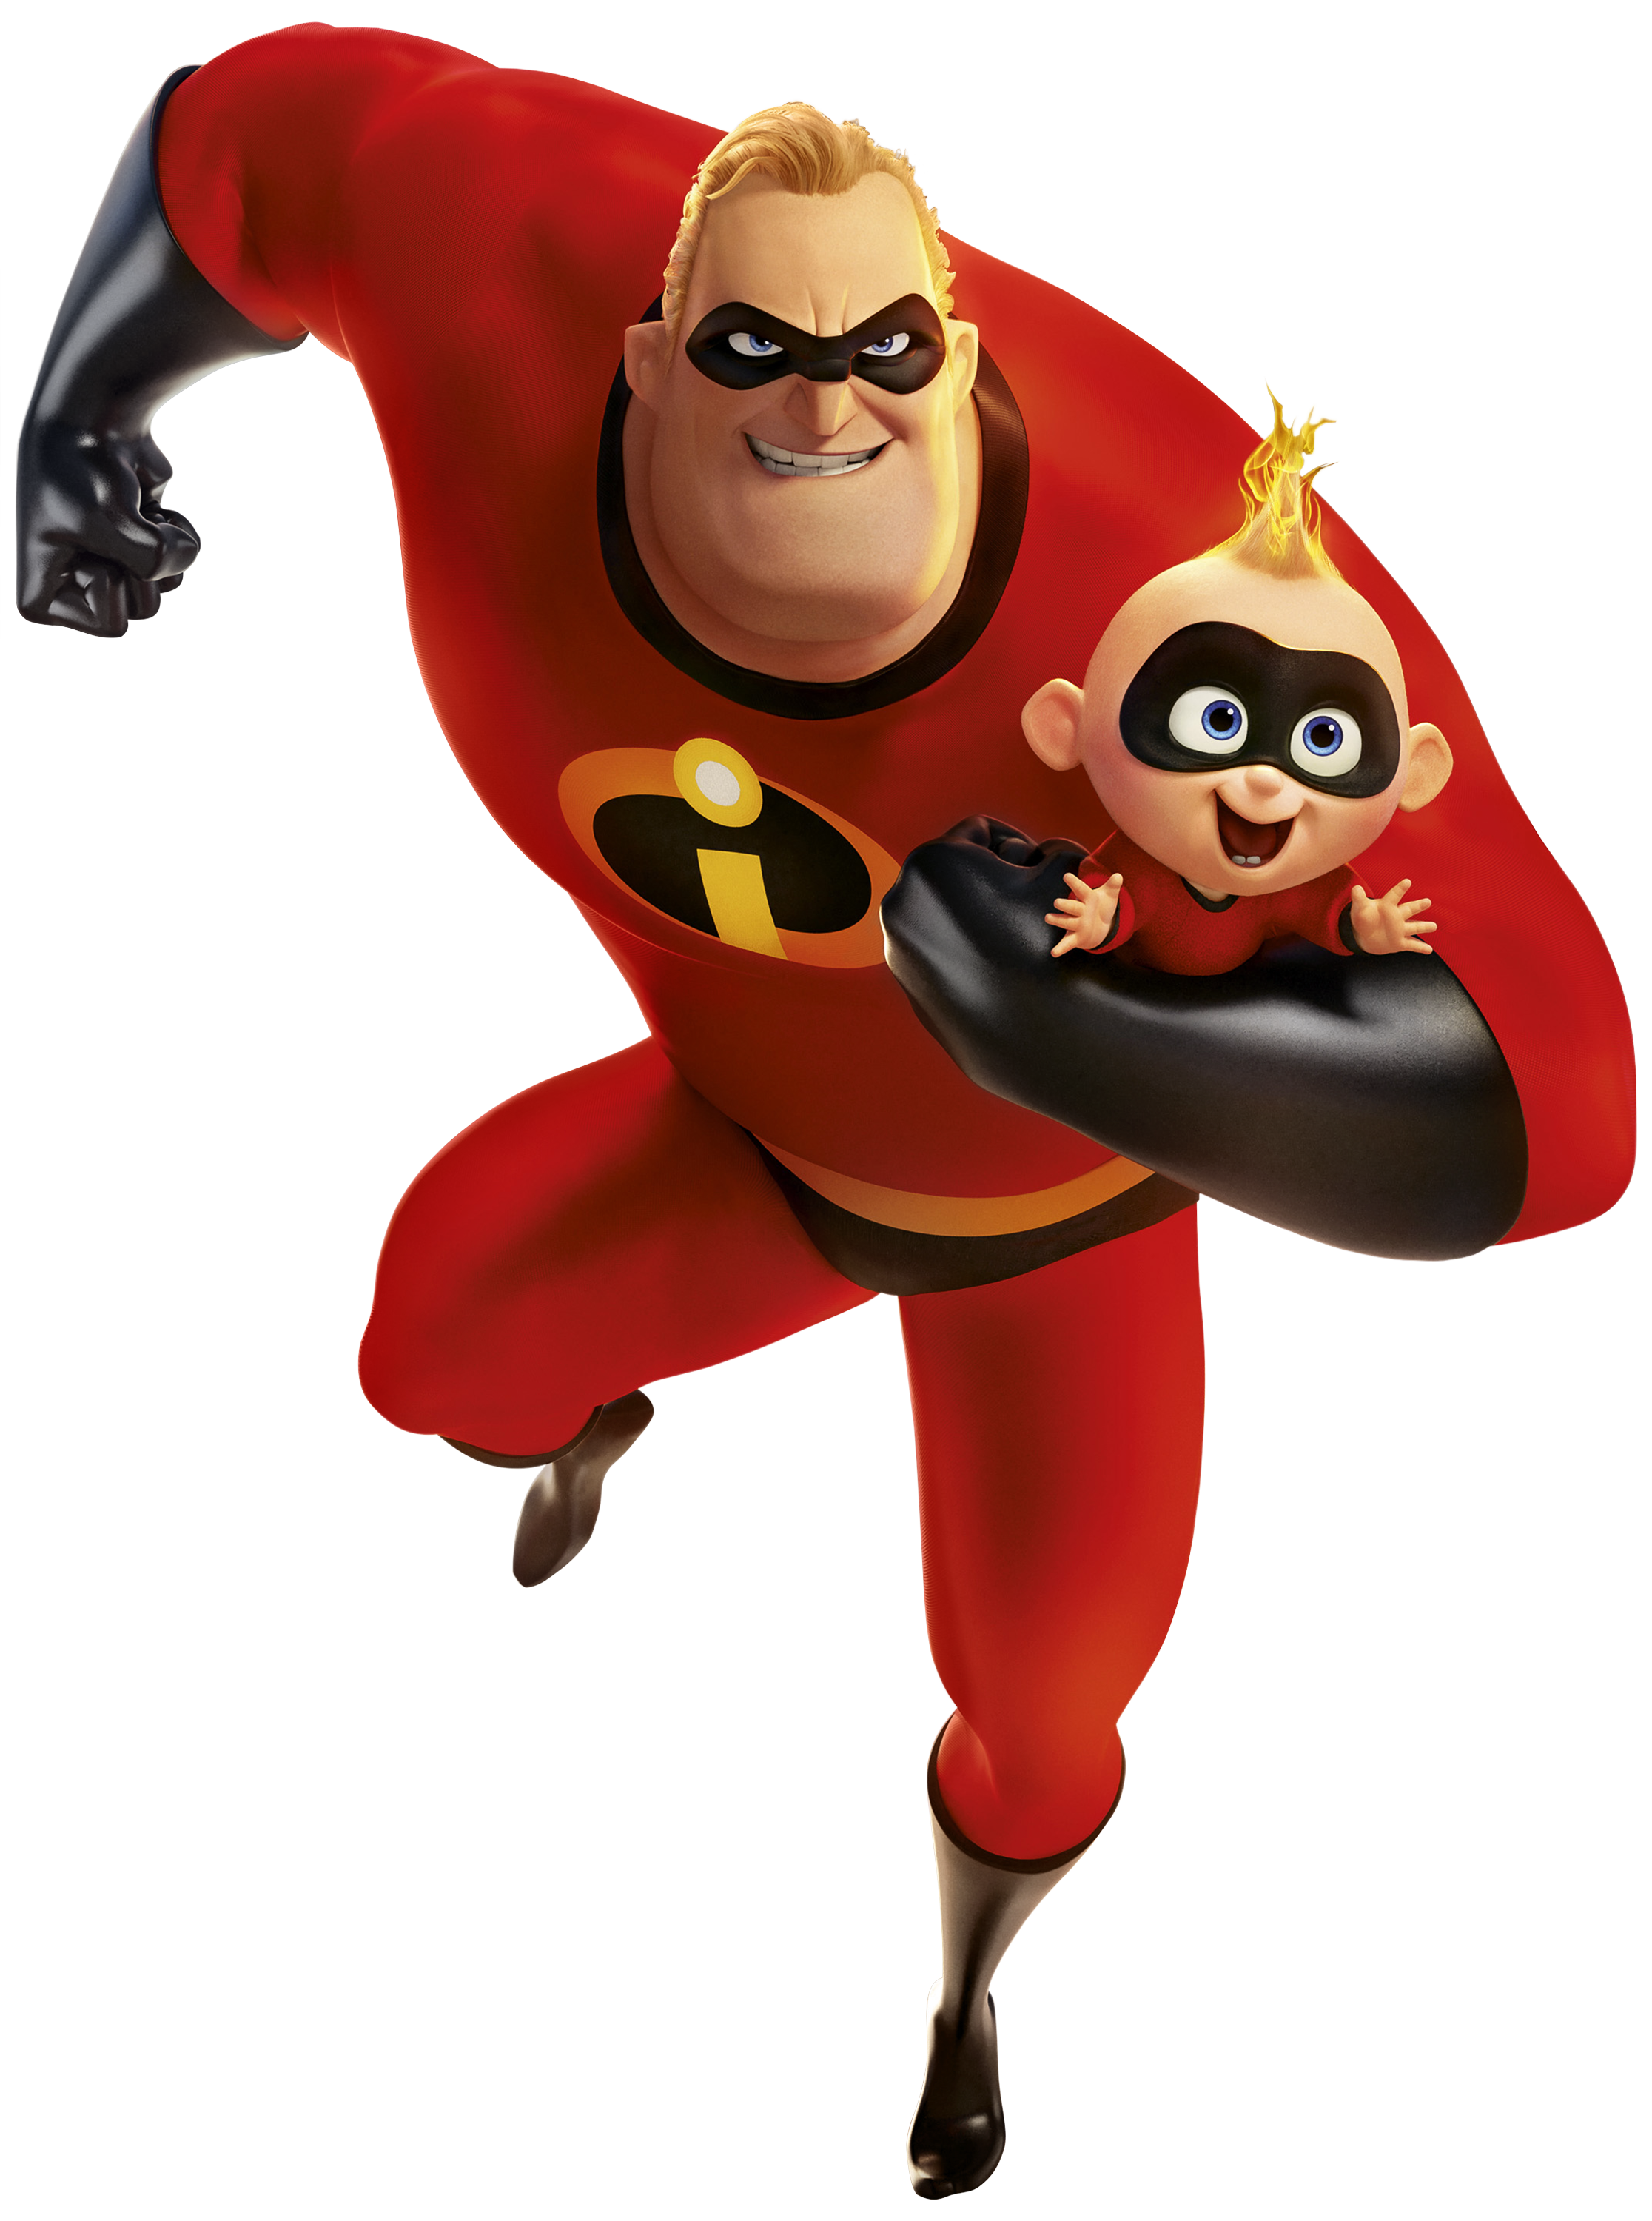 Incredibles 2 Png Cartoon Image Gallery Yopriceville High Quality Images And Transparent P Kid Movies Disney Disney Incredibles Classic Cartoon Characters